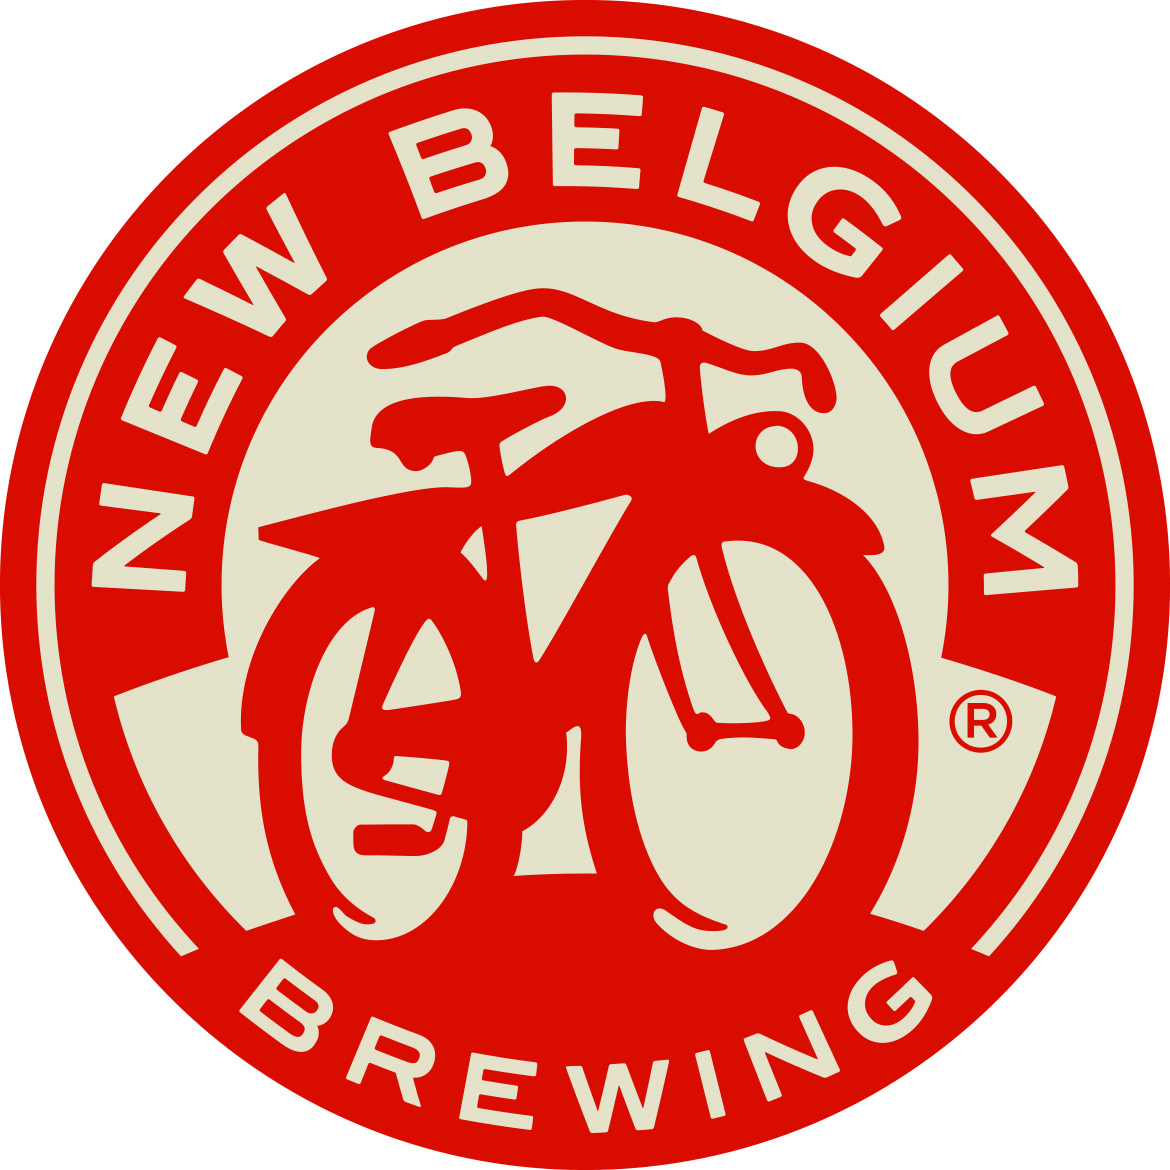 New Belgium Brewing.jpg